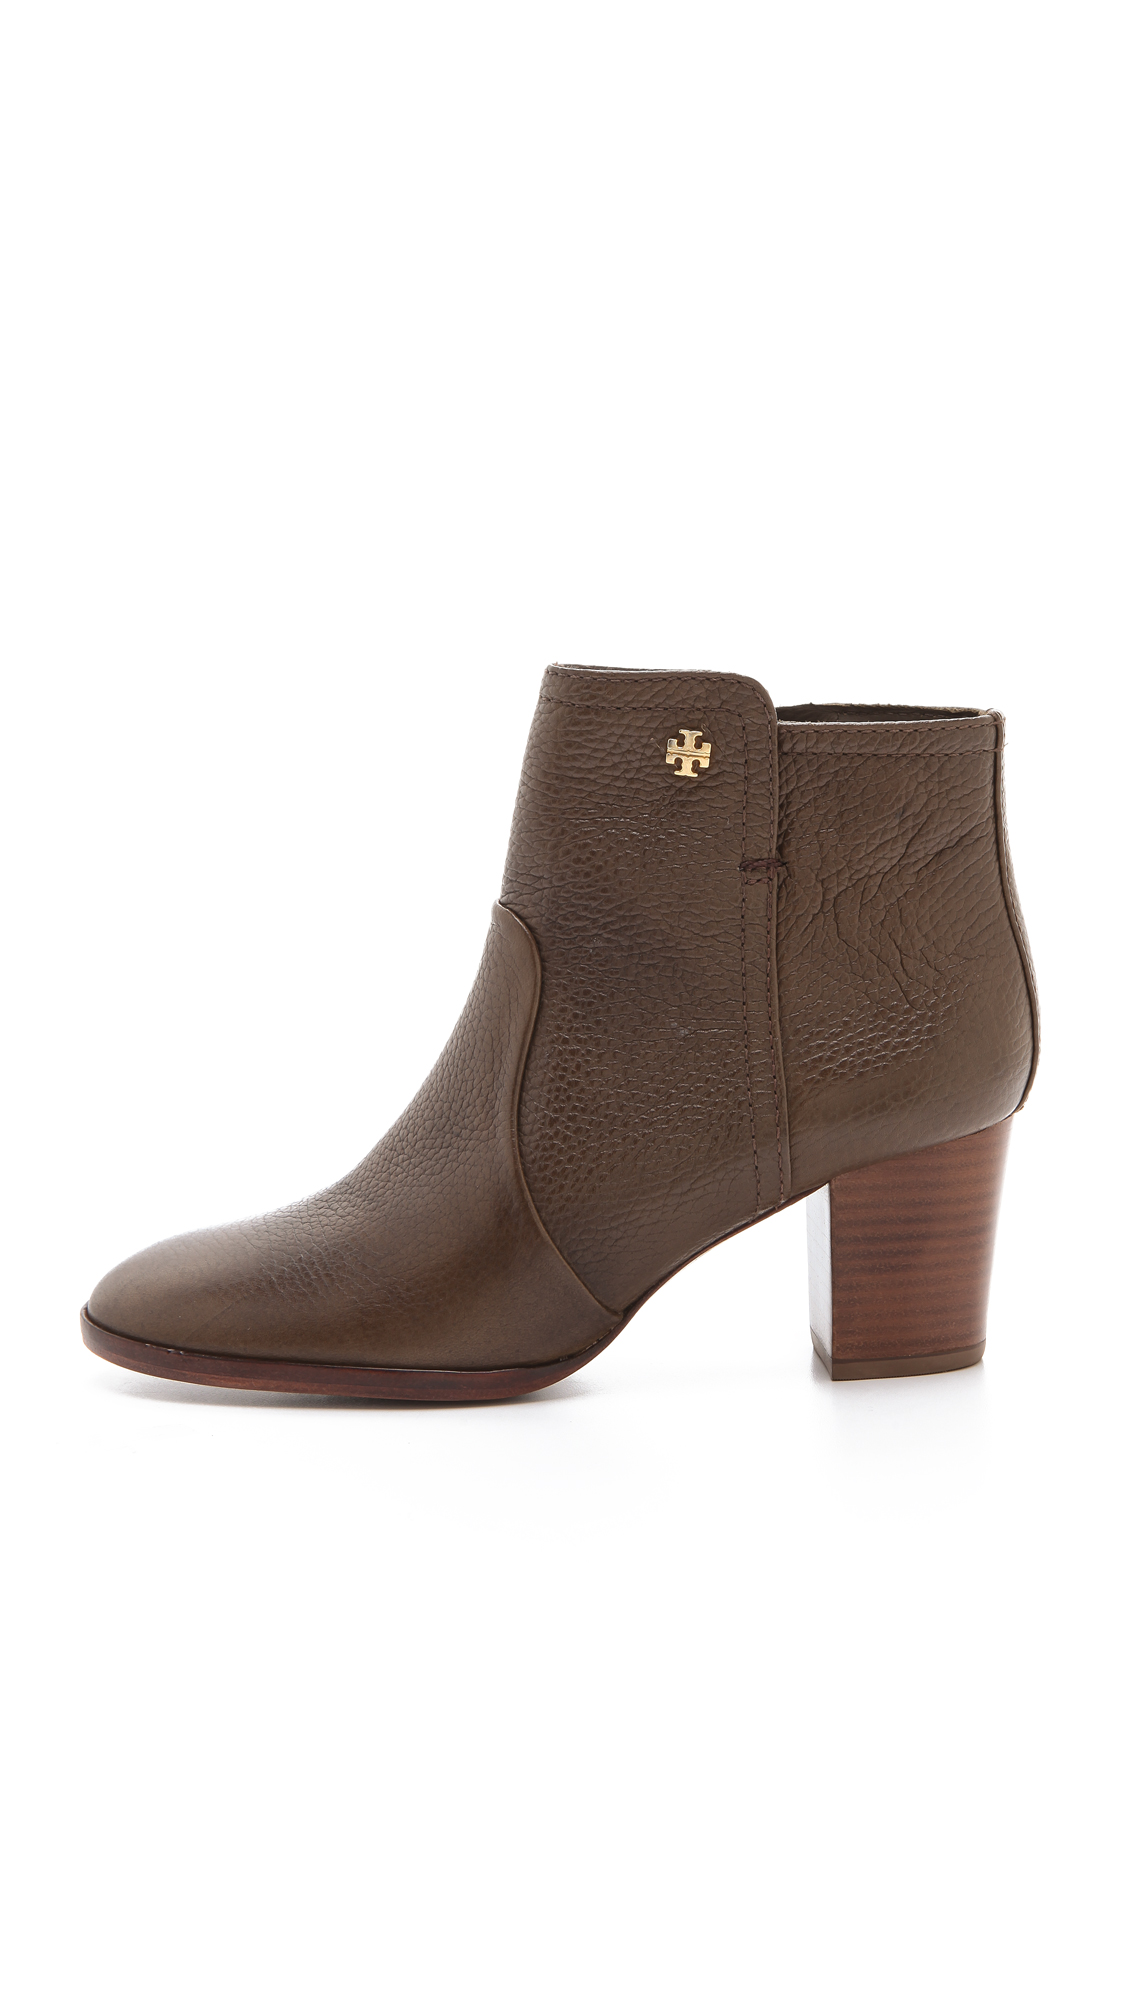 66d26add2e4 Lyst - Tory Burch Sabe Booties in Brown